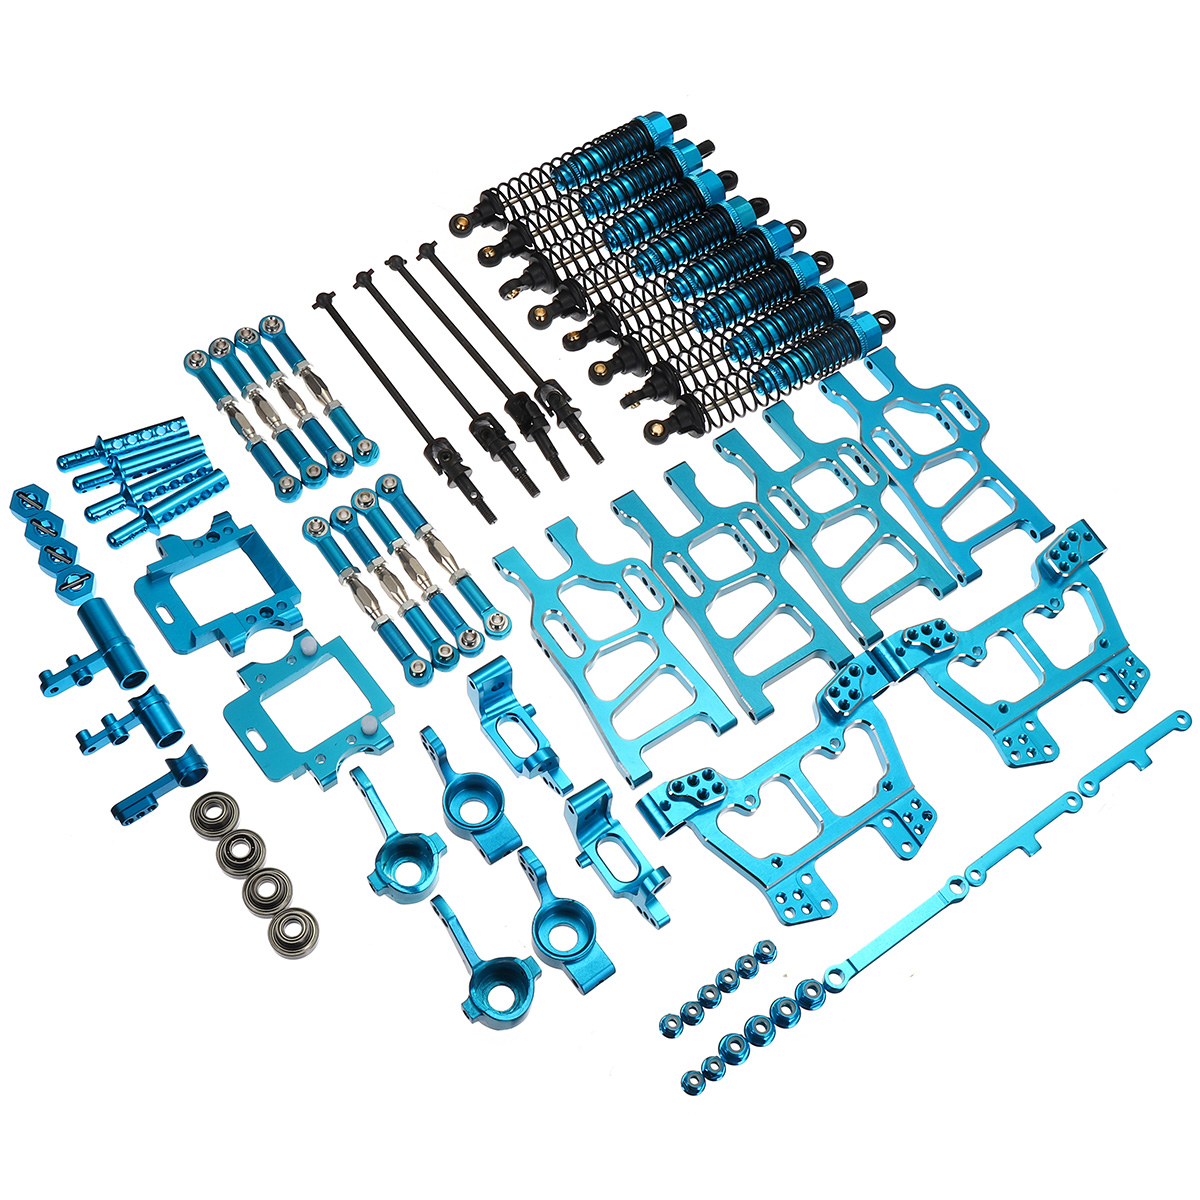 Upgrade Parts Package Aluminum Alloy Blue For HSP RC 1:10 94111 94108 Crawler Car Monster Truck Blue Parts & Accs цены онлайн